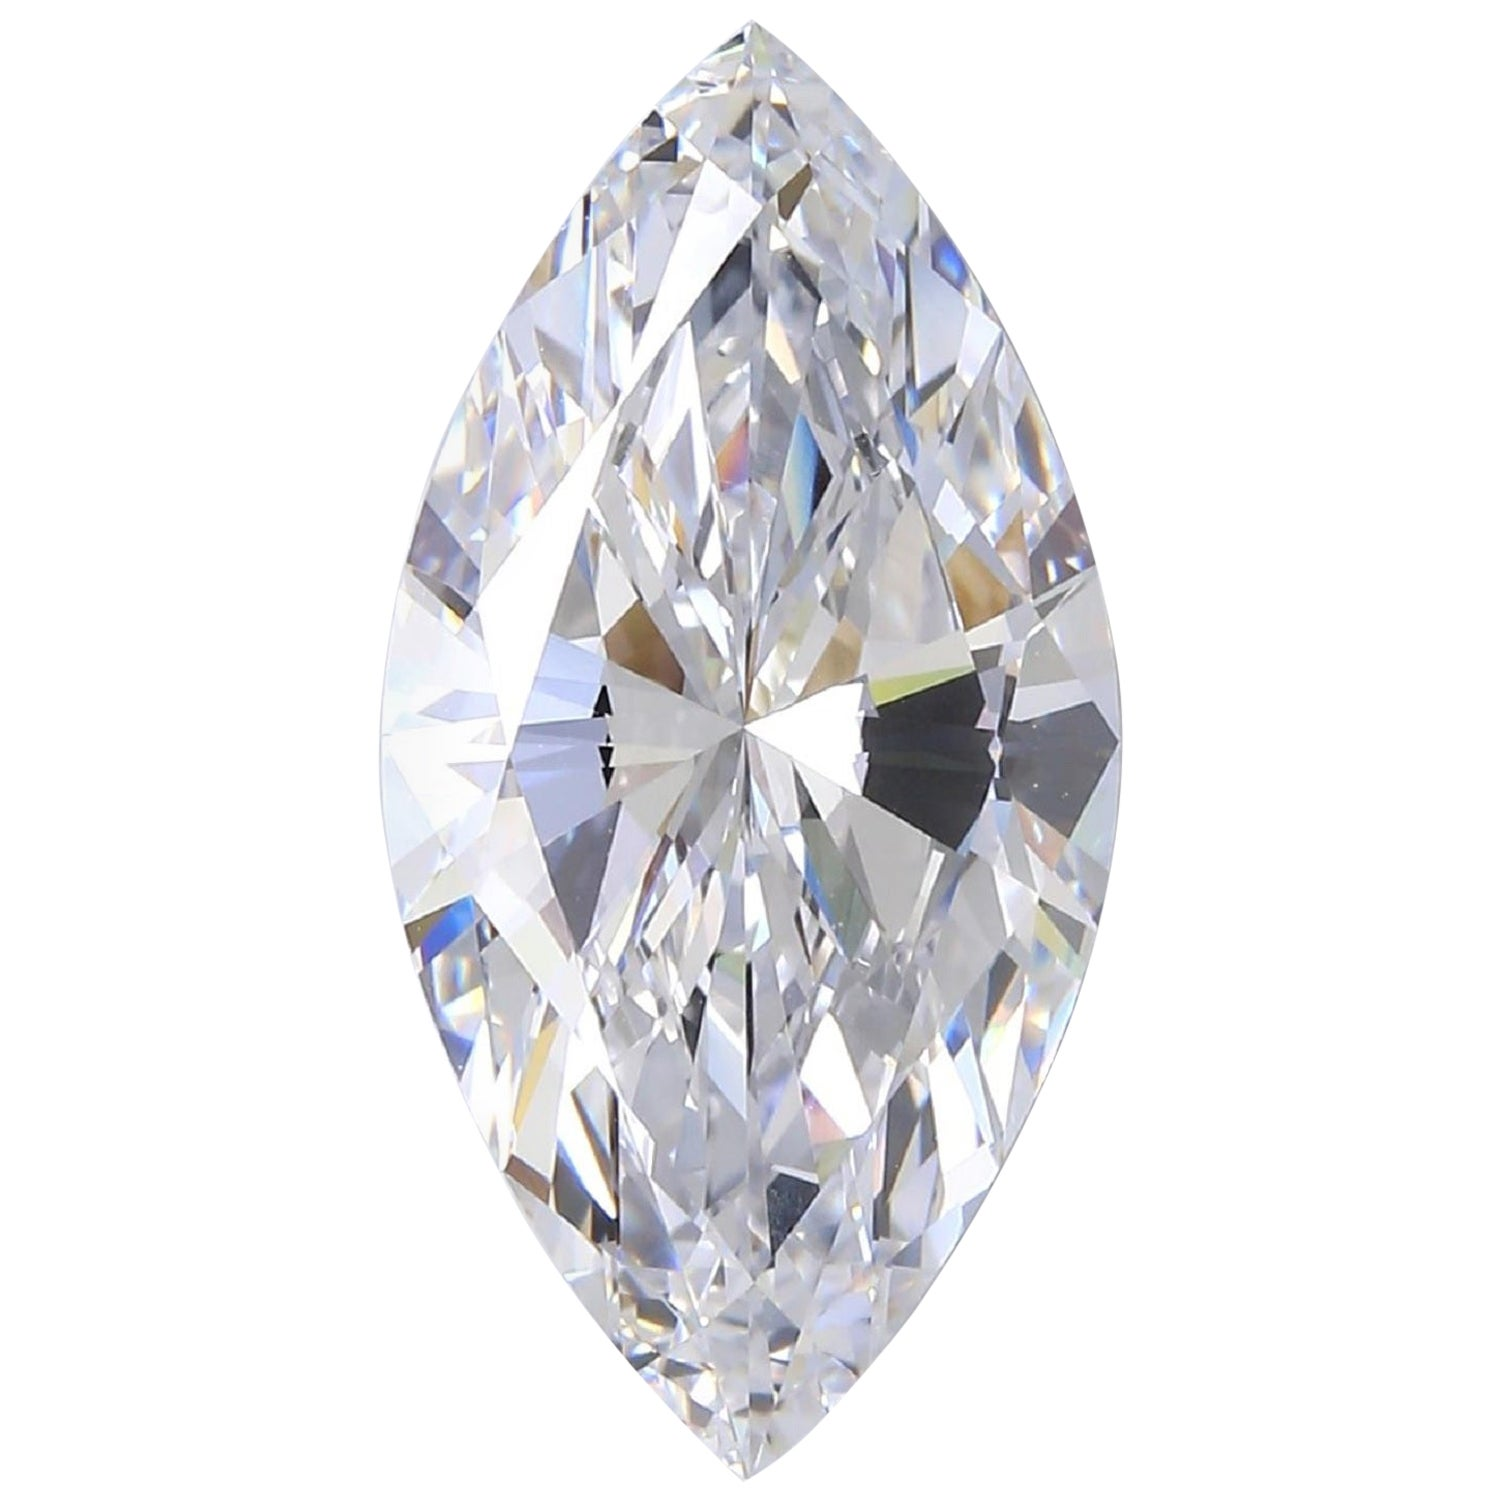 Internally Flawless D Color GIA Certified 8.33 Carat Marquise Diamond